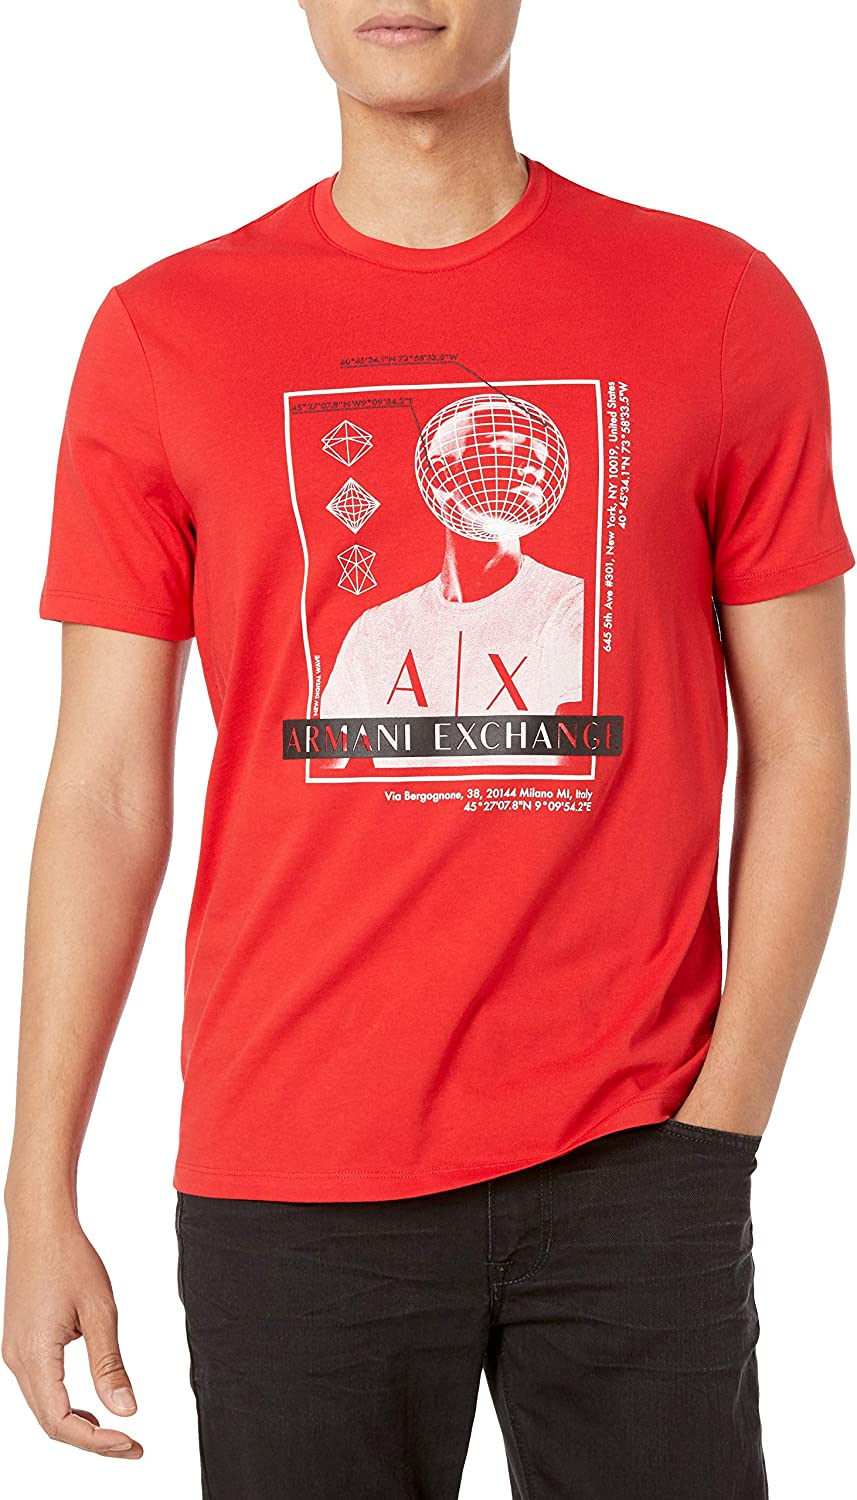 AX Armani Exchange Men's Graphic Jersey Challenge Max 41% OFF the lowest price T-Shirt Cotton